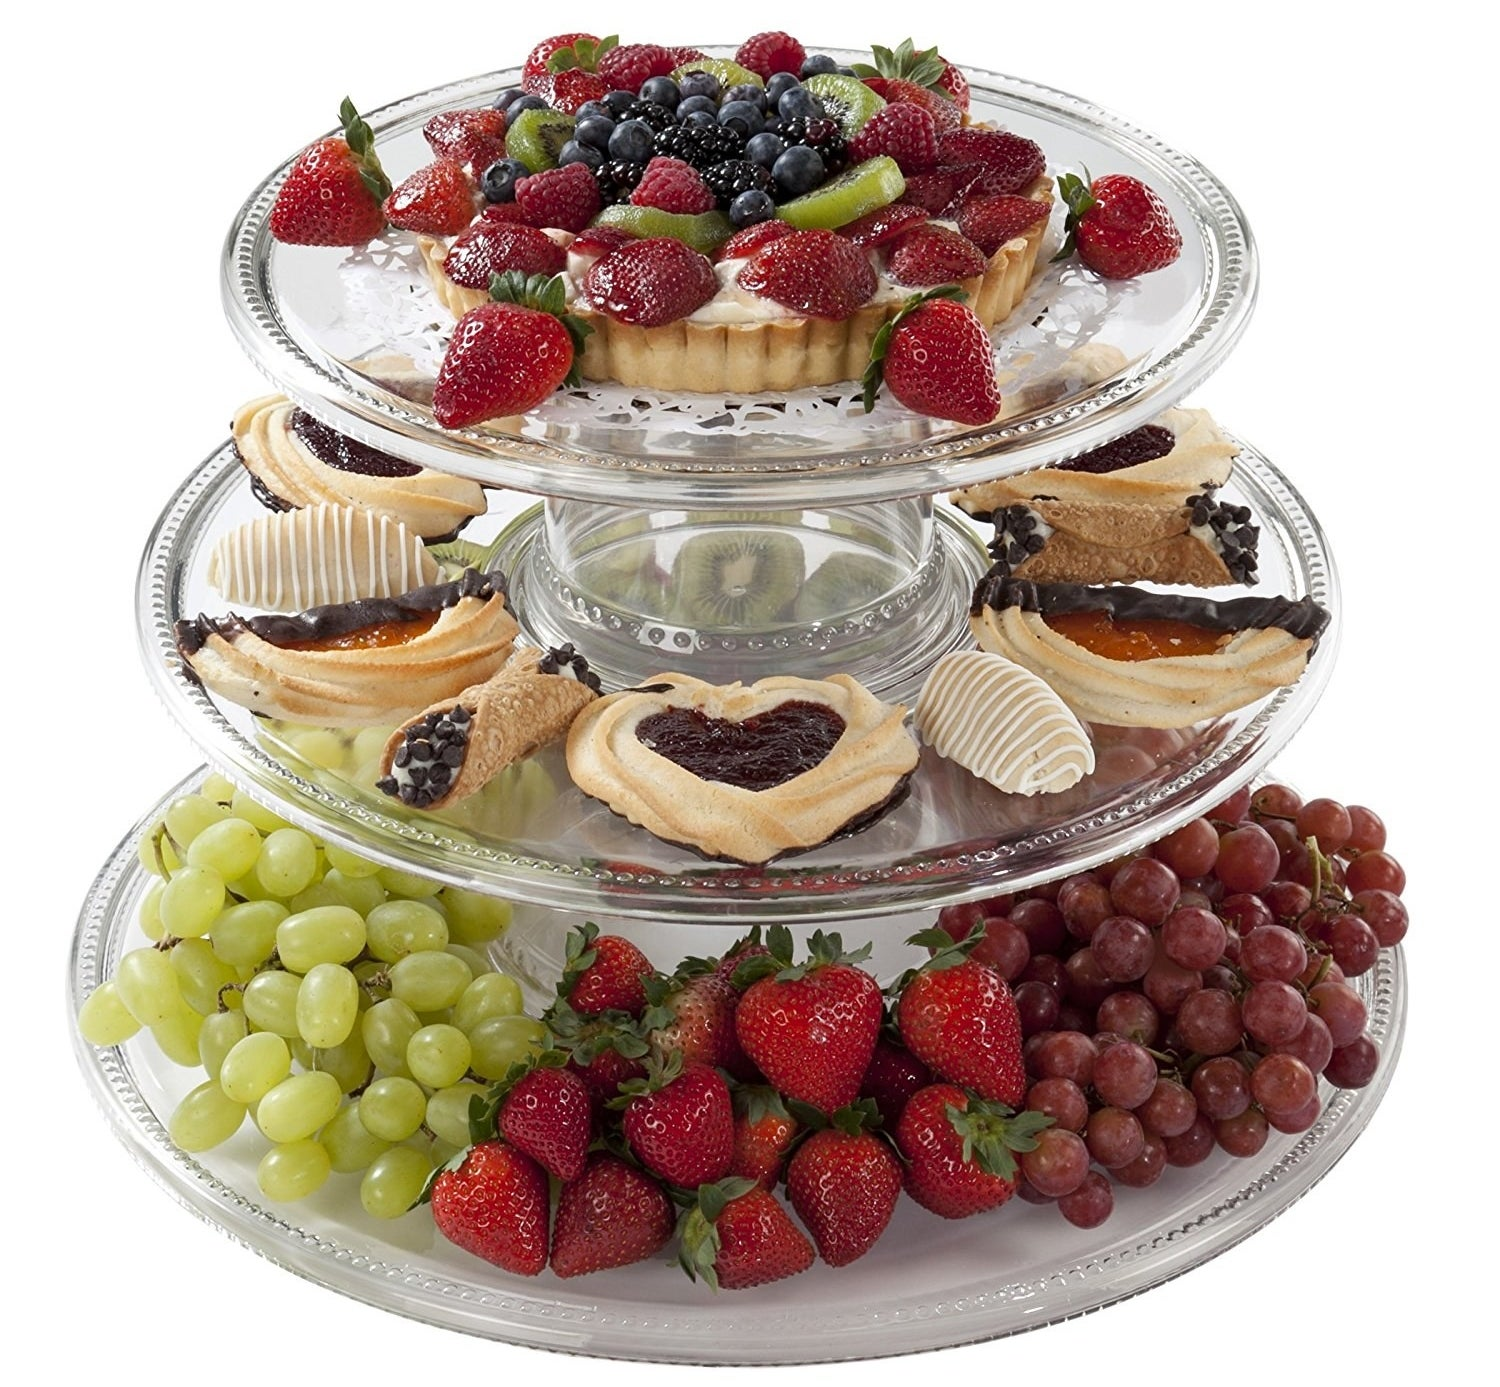 A creative three-tier tower that disassembles and can be used as separate serving bowls and platters.